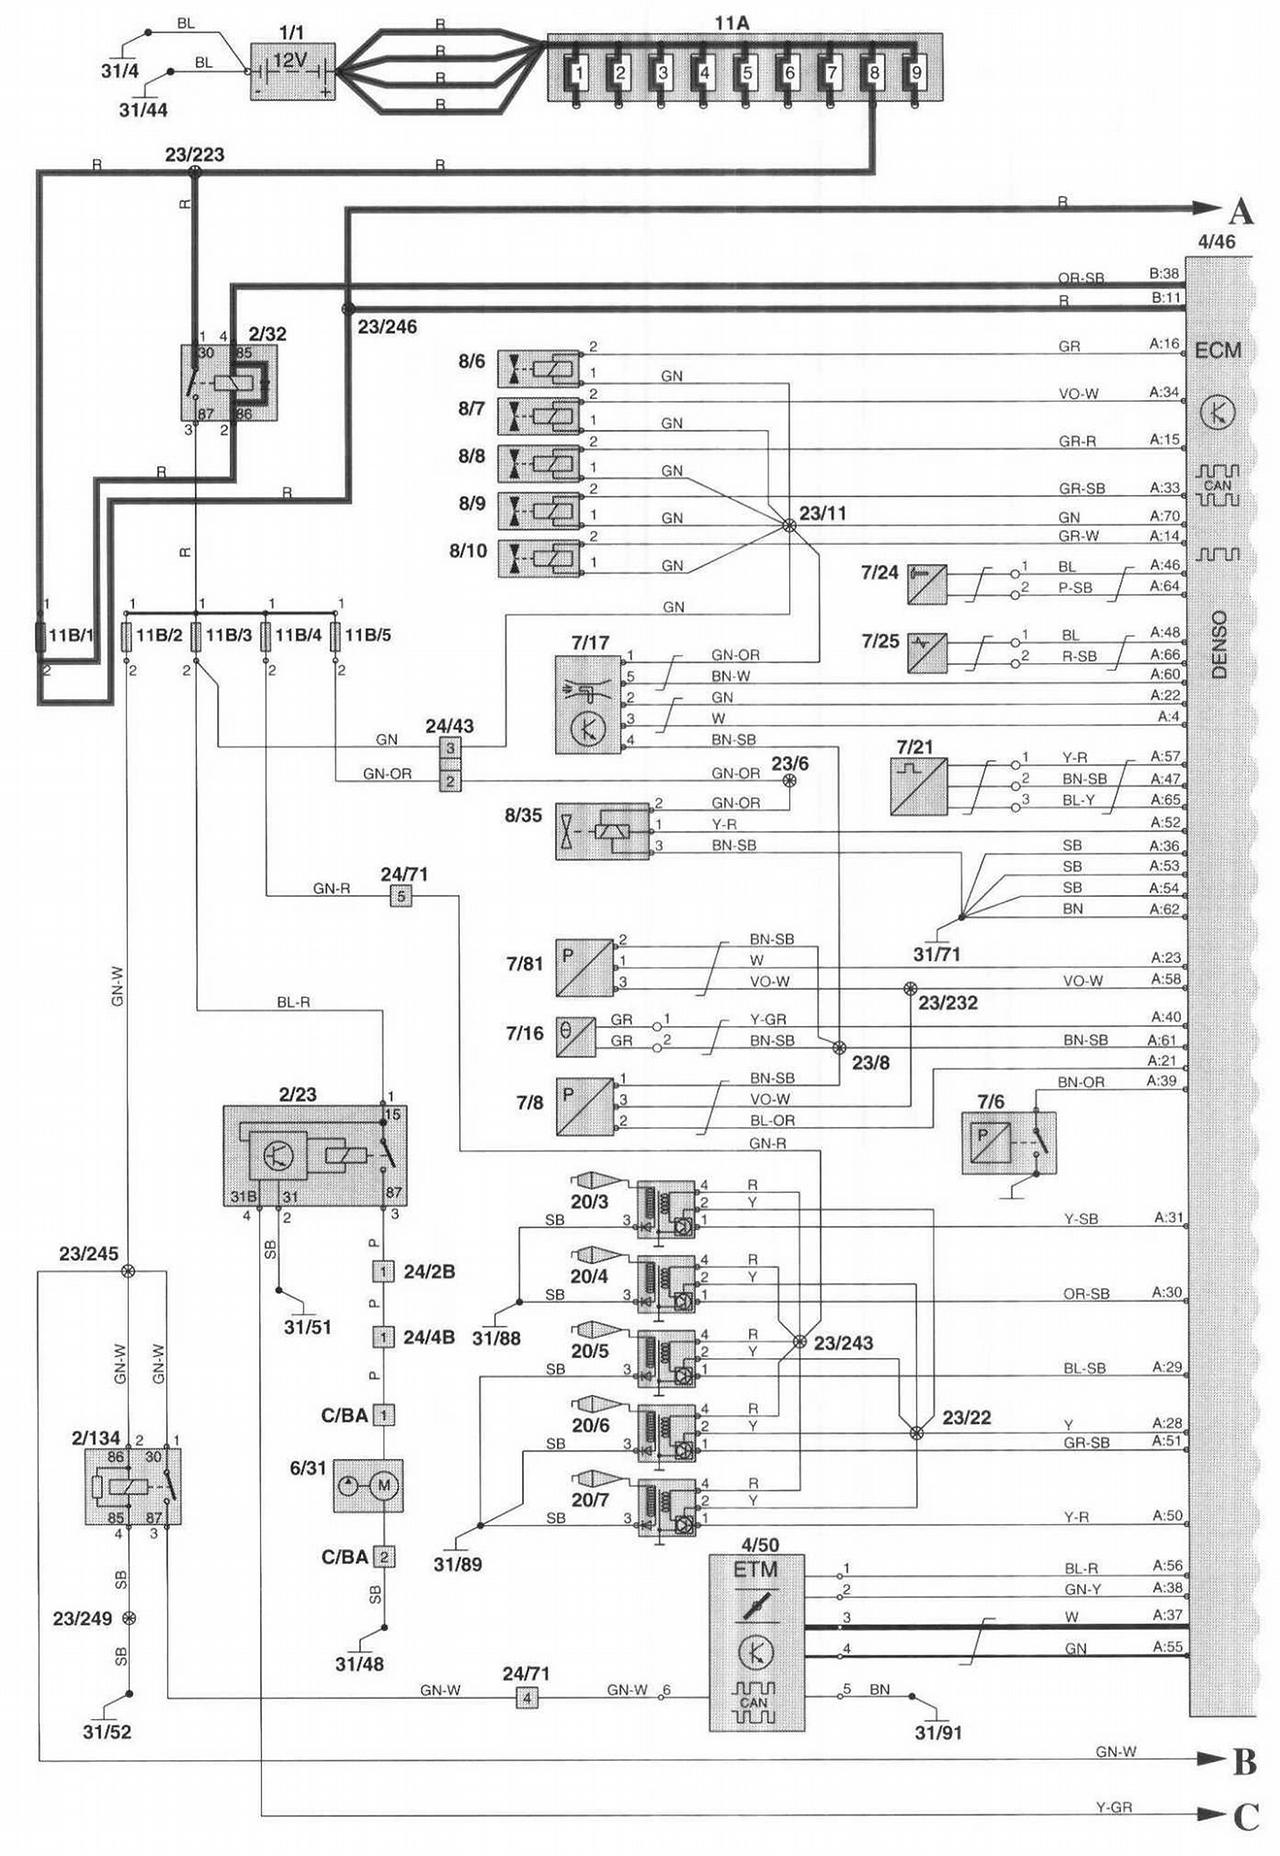 Wiring Diagram For Volvo V70